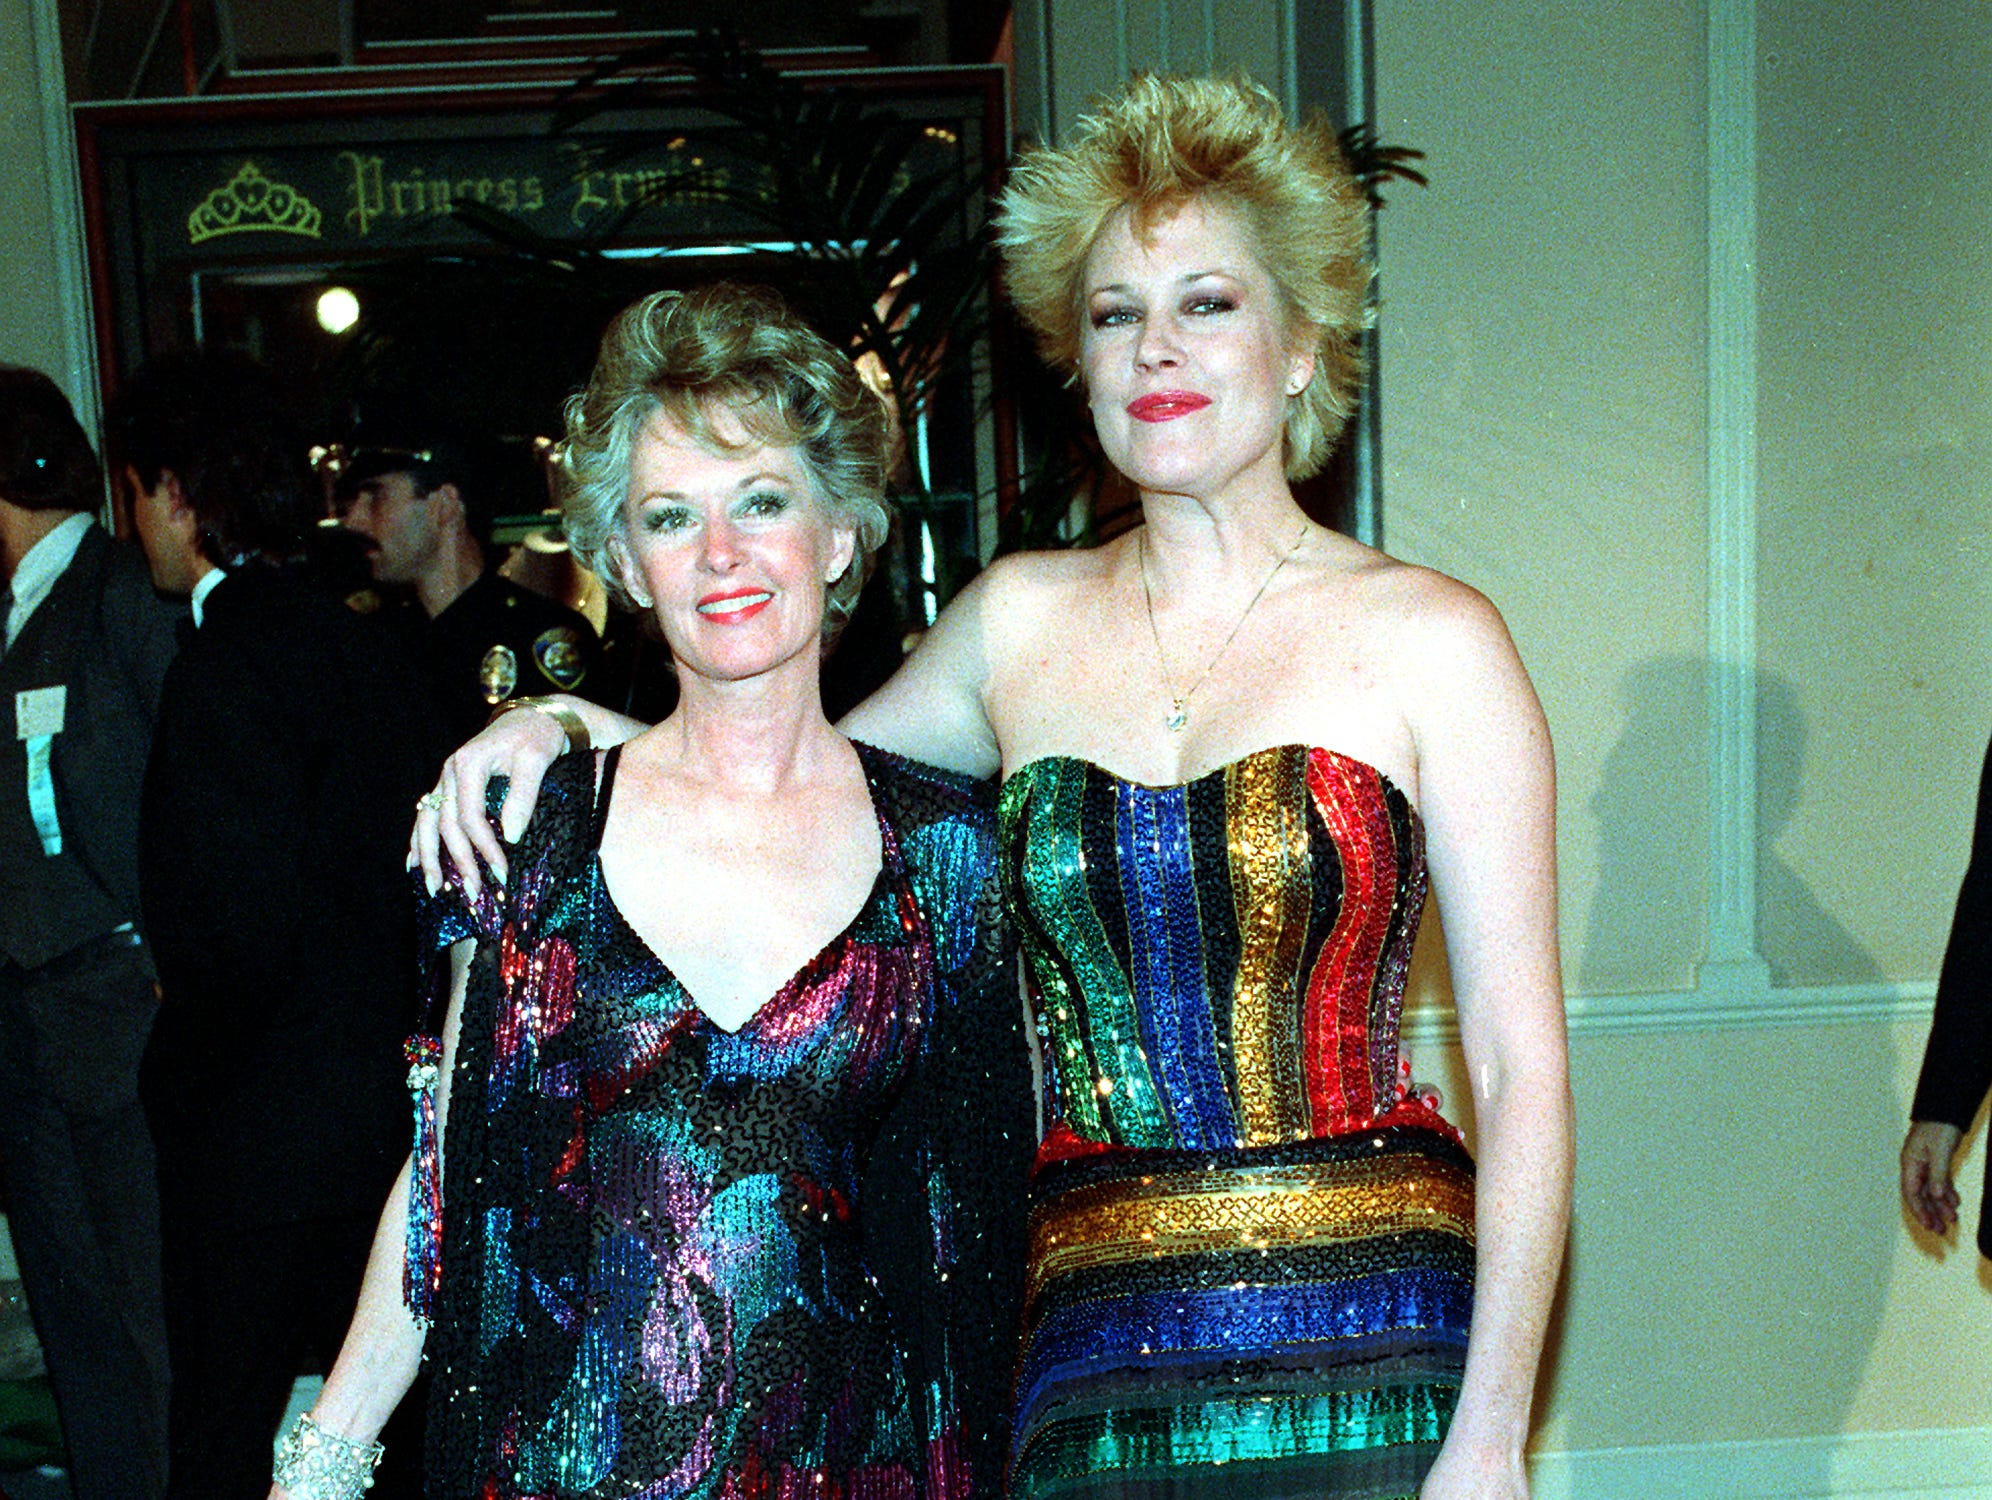 """Actress Tippi Hedren, left, and her daughter, actress Melanie Griffith, pose at the 44th annual Golden Globe Awards in Los Angeles, Ca., Jan. 31, 1987.  Griffith is nominated in the category of best performance by an actress in a musical or comedy for her role in """"Something Wild.""""  (AP Photo/Avery) ORG XMIT: APHS124 [Via MerlinFTP Drop]"""